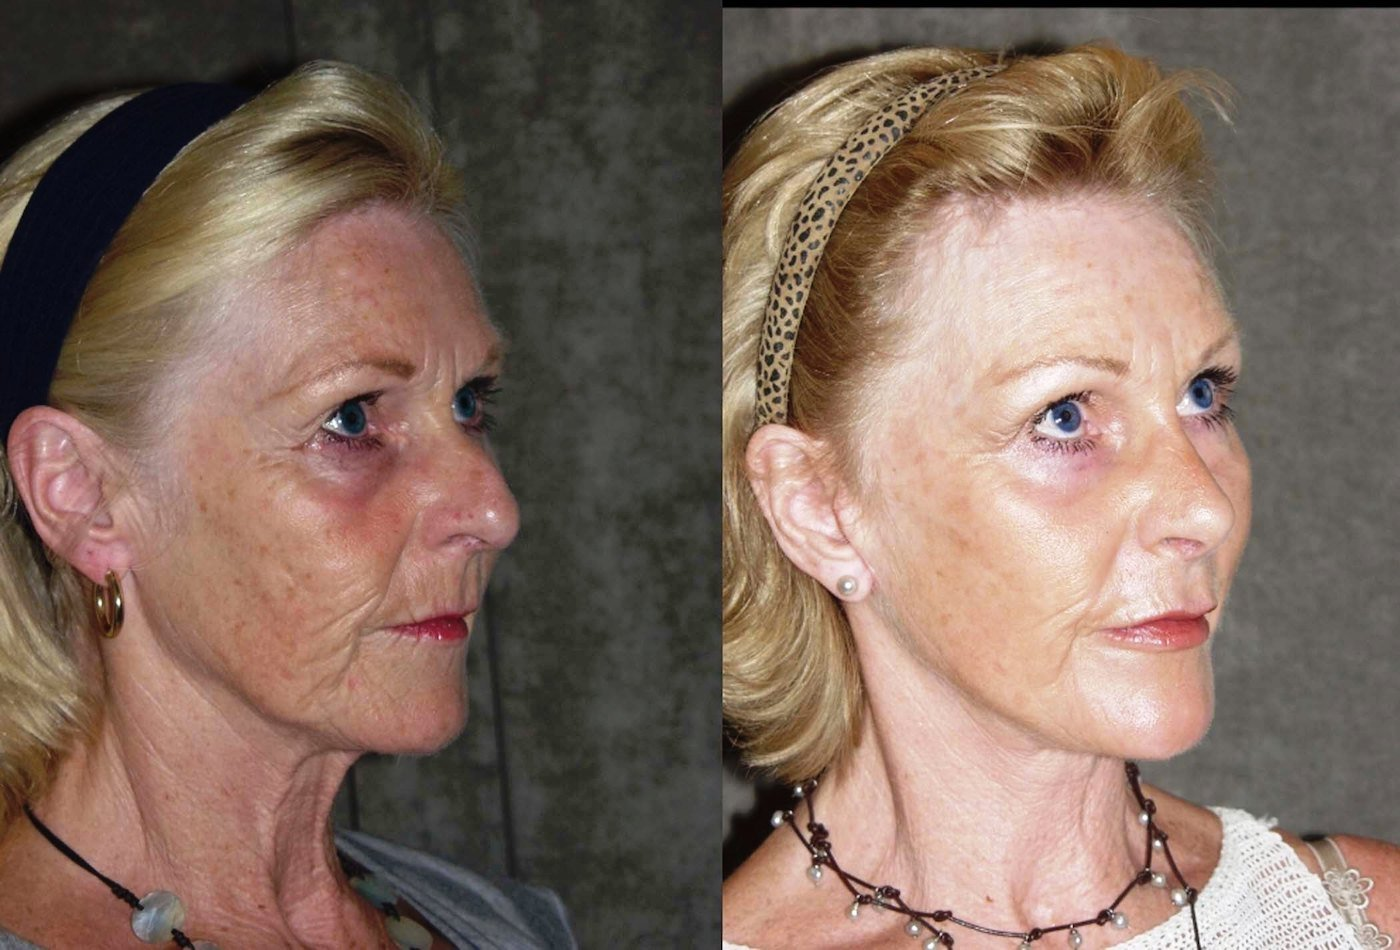 Facelift endoscopic browlift chin implant rhinoplasty oblique view